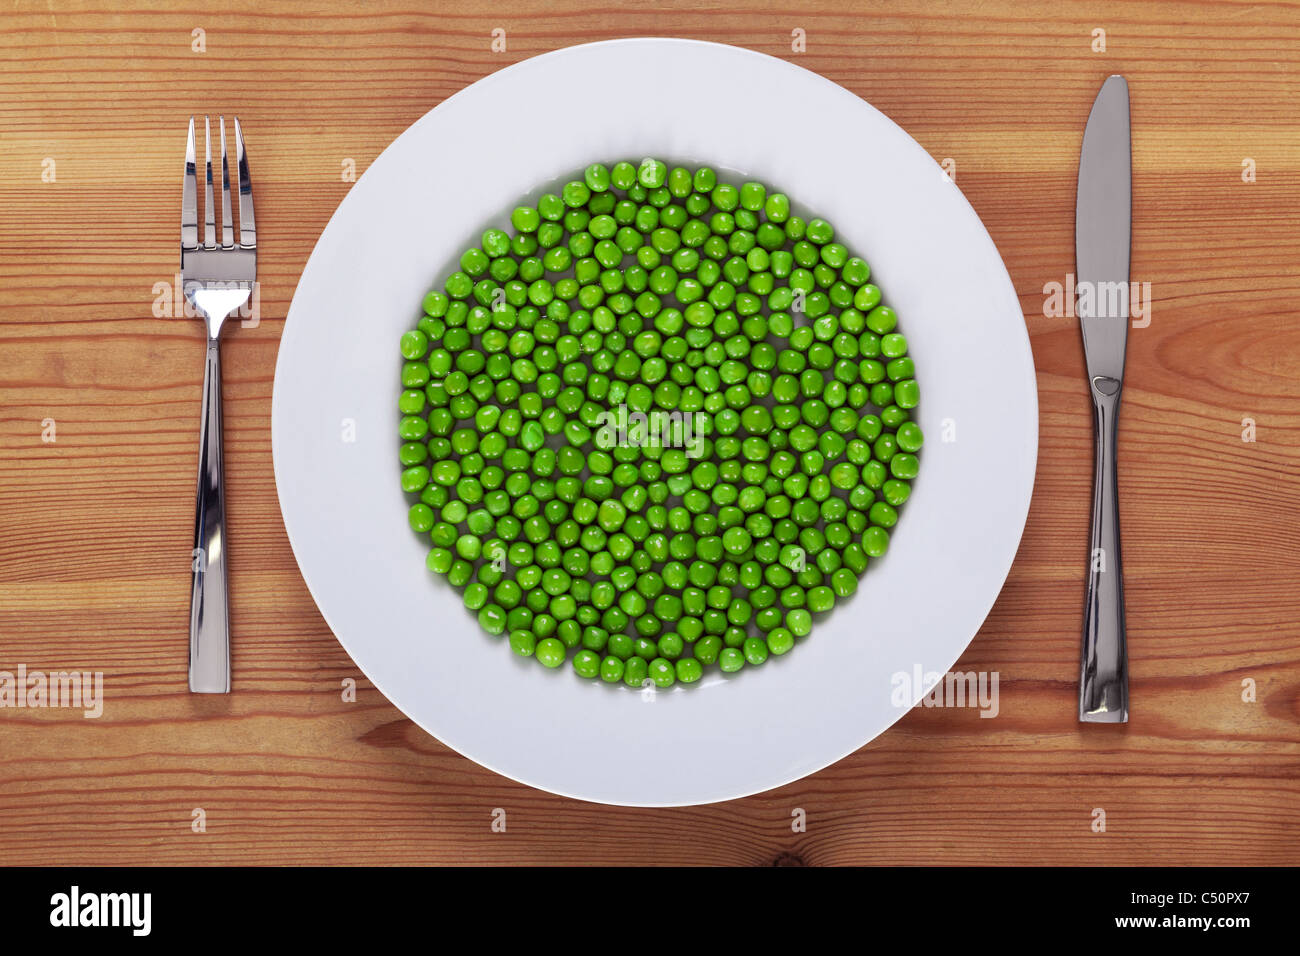 Photo of green peas on a white plate with knife and fork on a rustic wooden table. - Stock Image